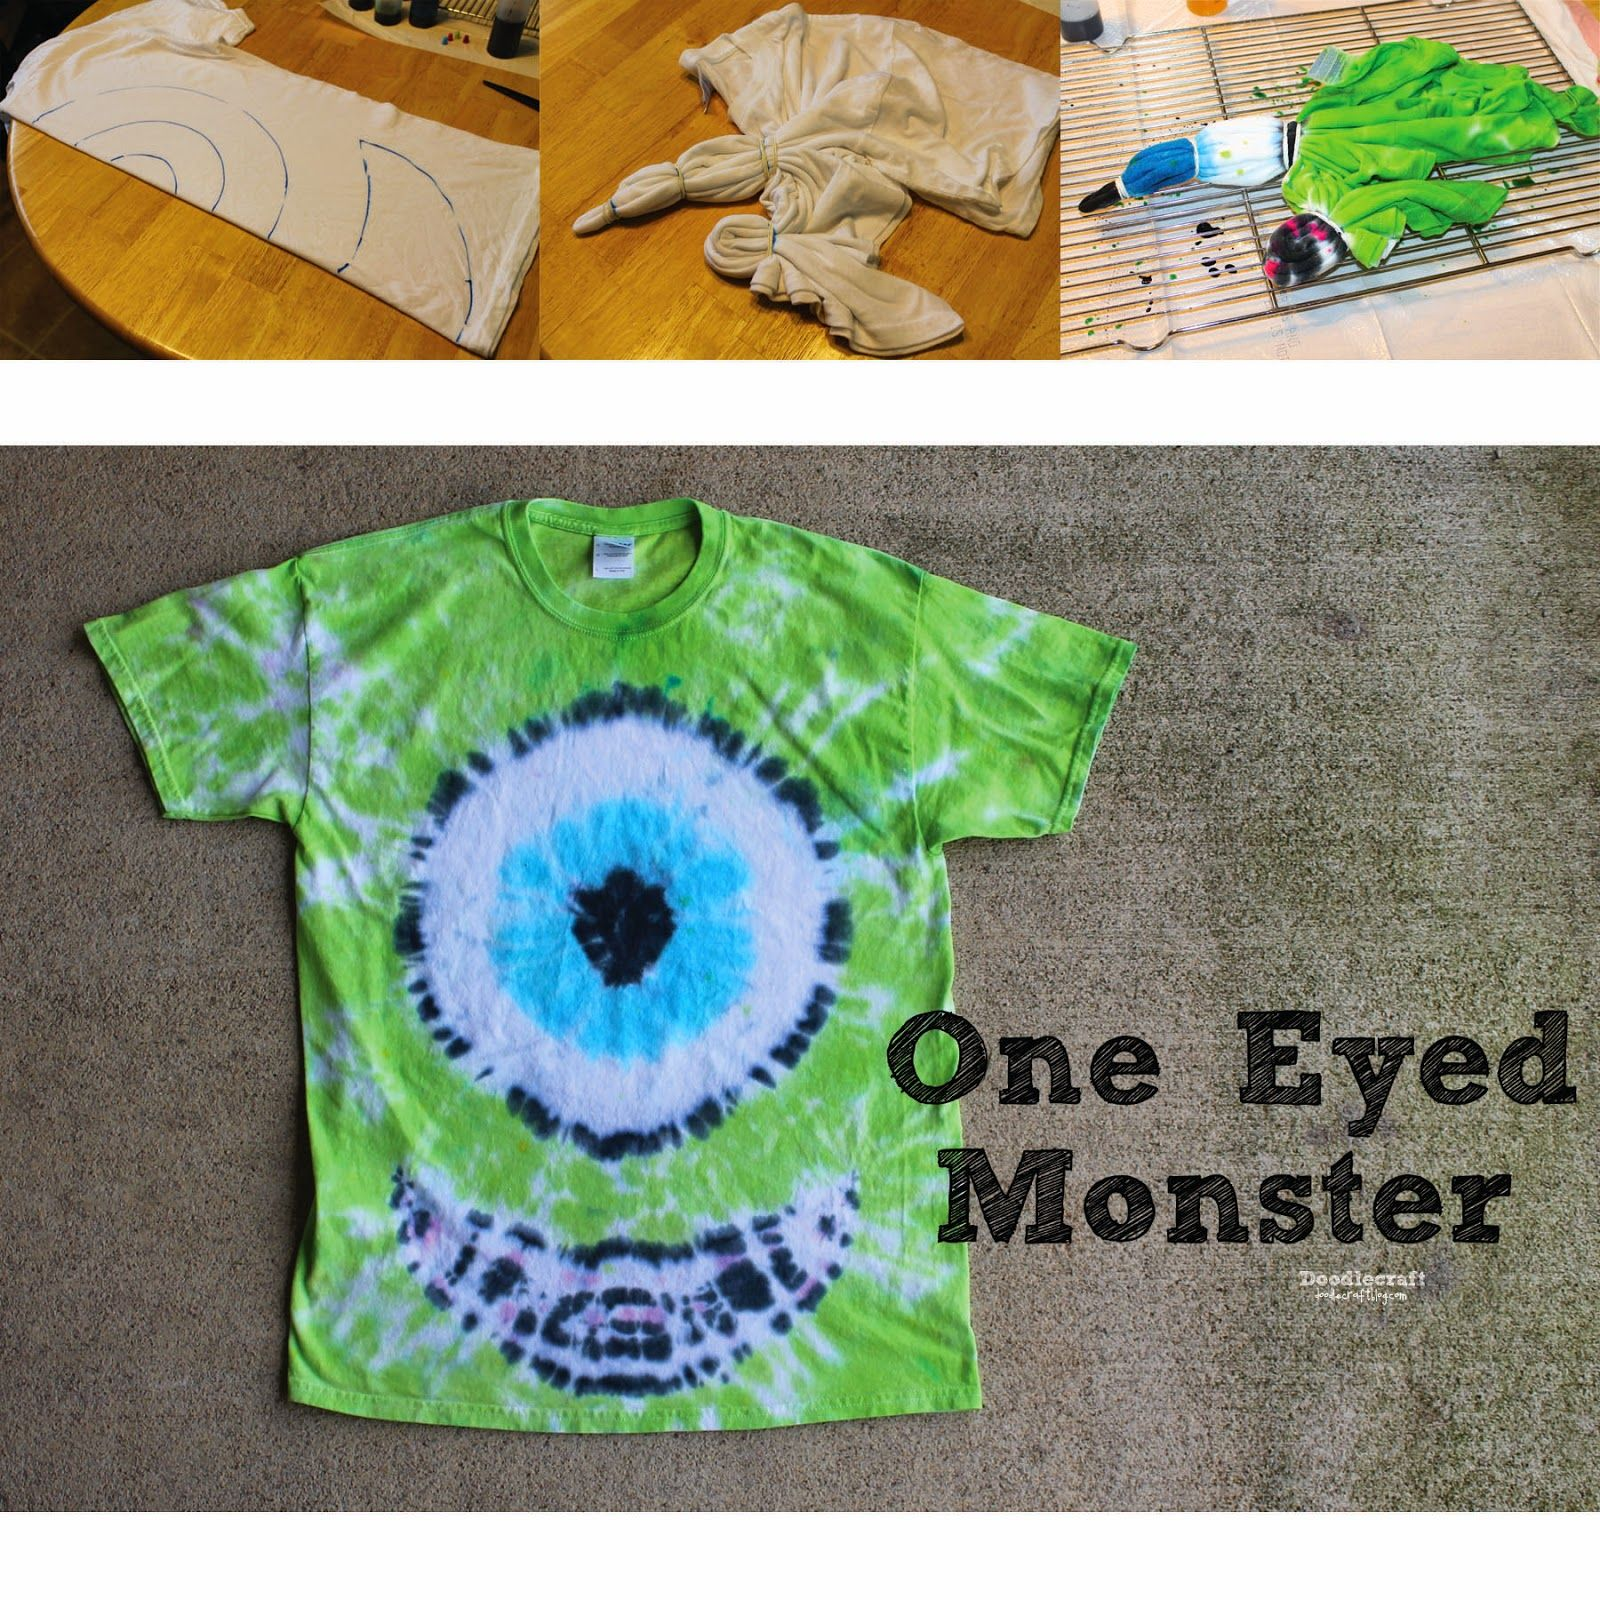 Halloween Tie Dye Party Tie Dye Crafts Tie Dye Party Tie Dye